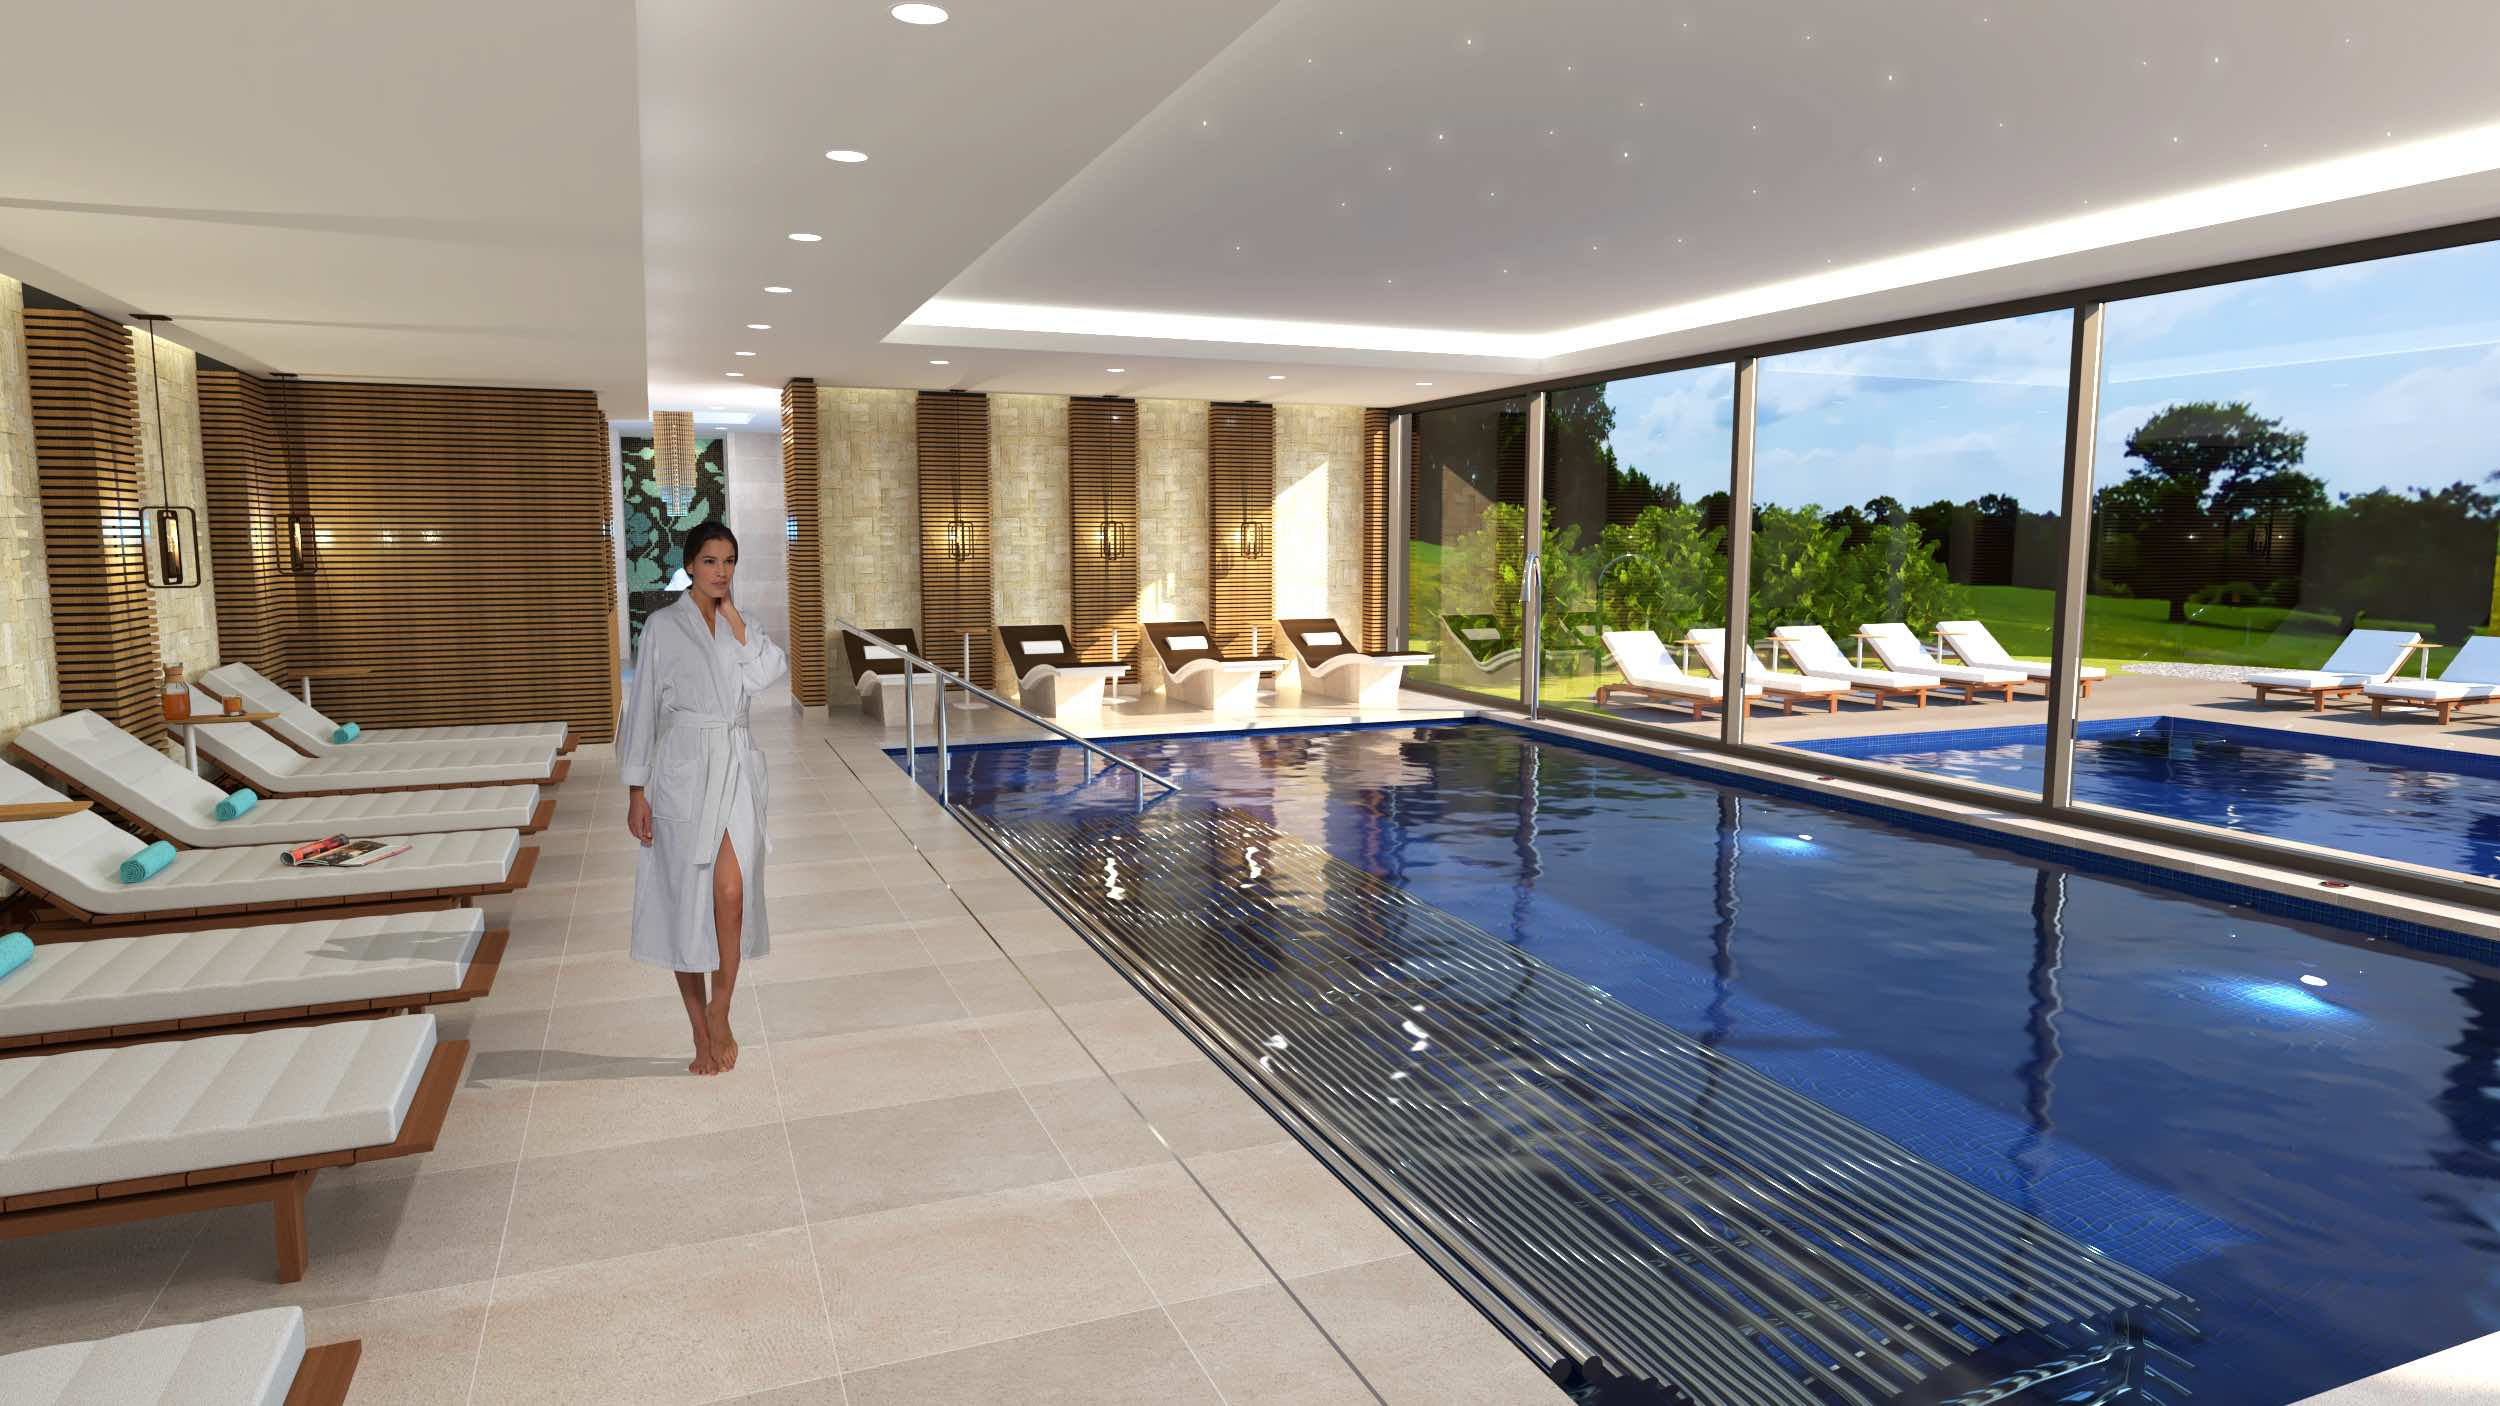 The Spa at Carden pool area